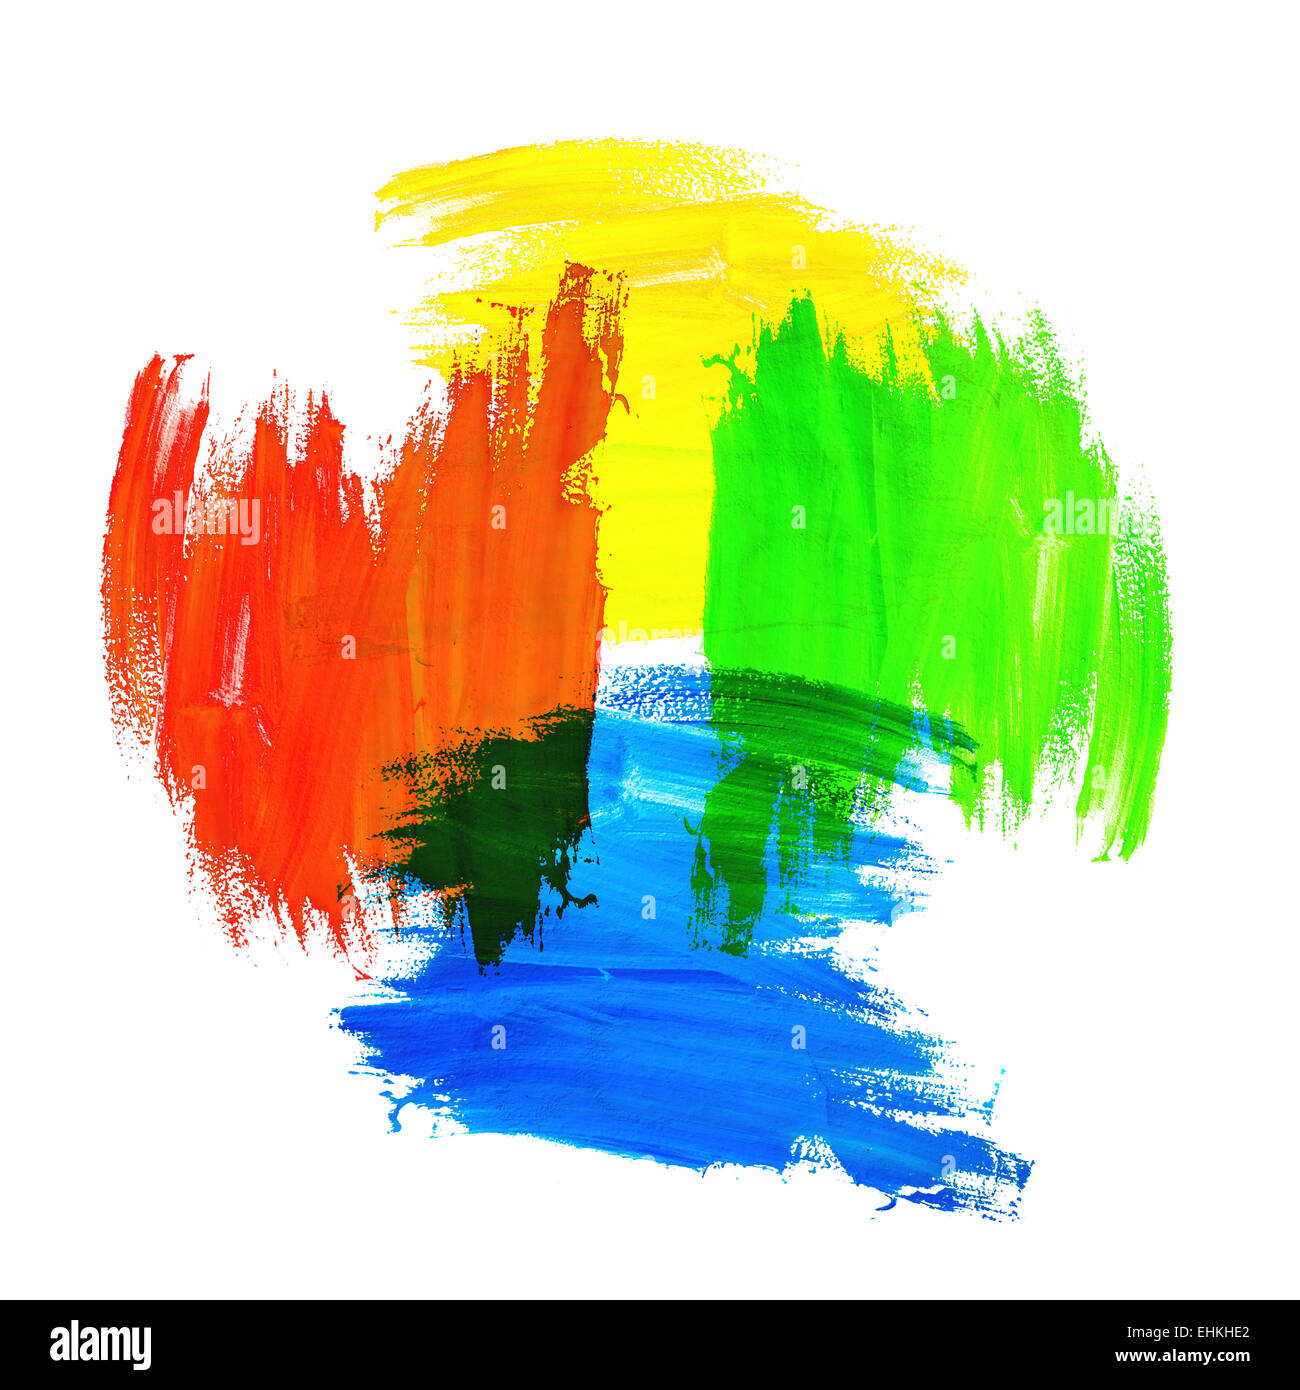 grunge brush strokes of yellow green blue and red paint on white stock photo 79721434 alamy. Black Bedroom Furniture Sets. Home Design Ideas